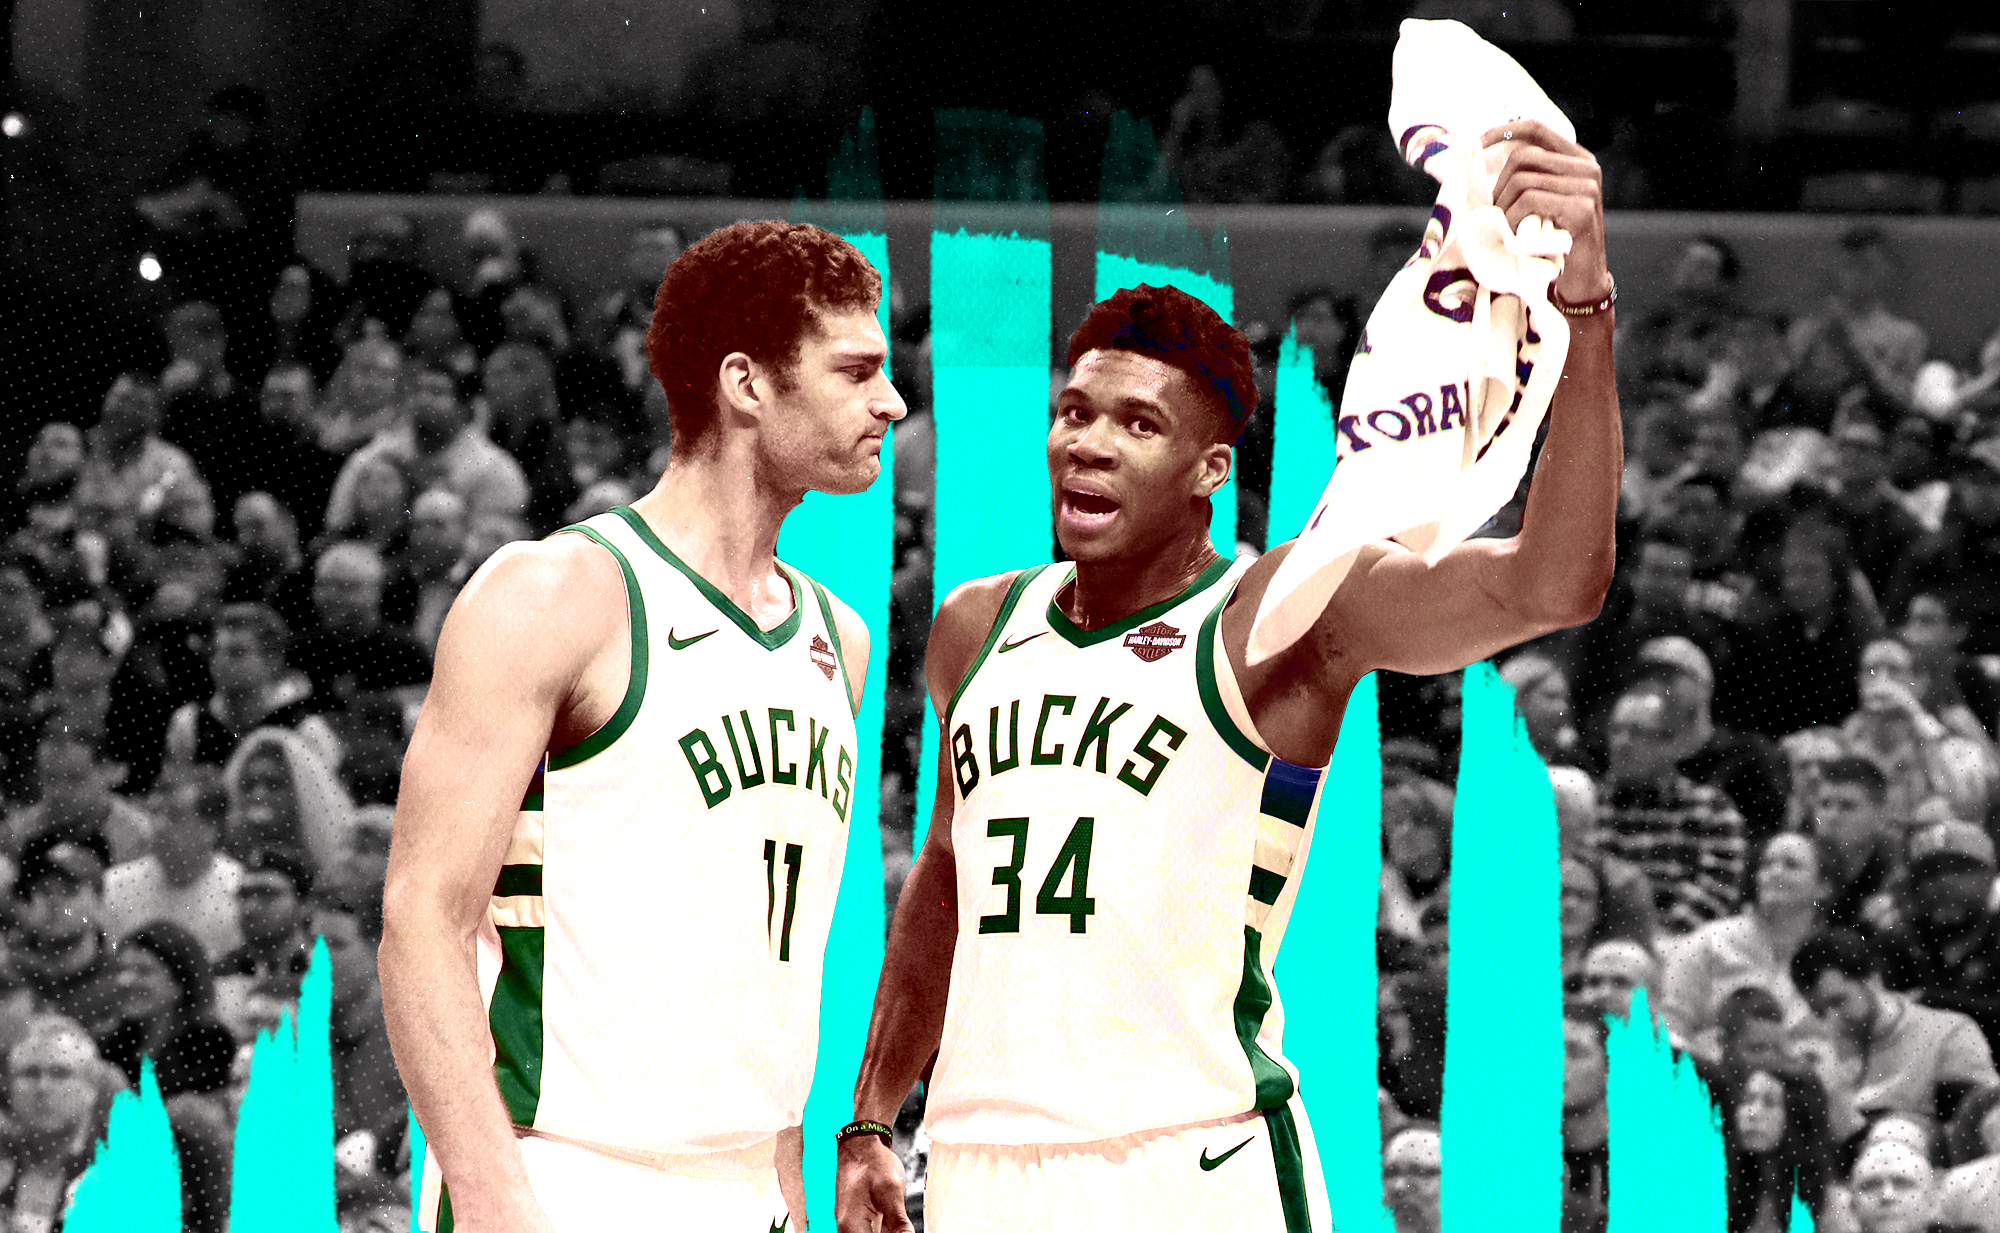 The Bucks' present is great, but their future is perilous